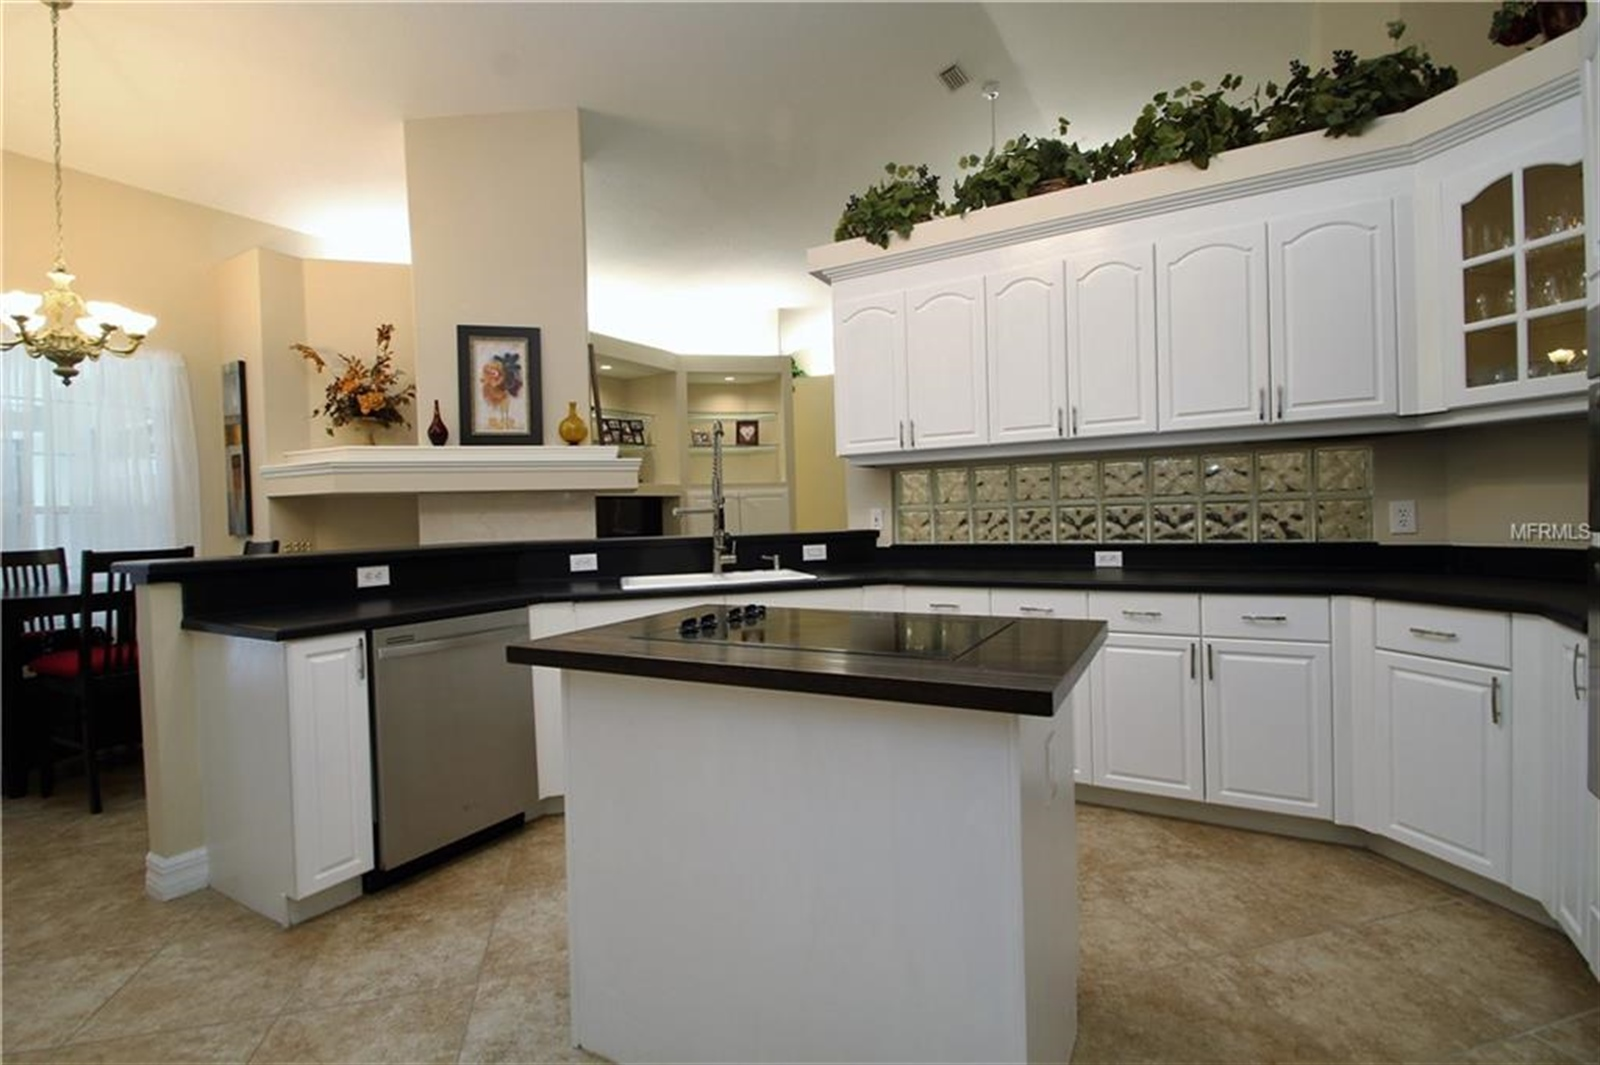 Real Estate Photography - 607 Cricklewood Ter, Lake Mary, FL, 32746 - Location 9